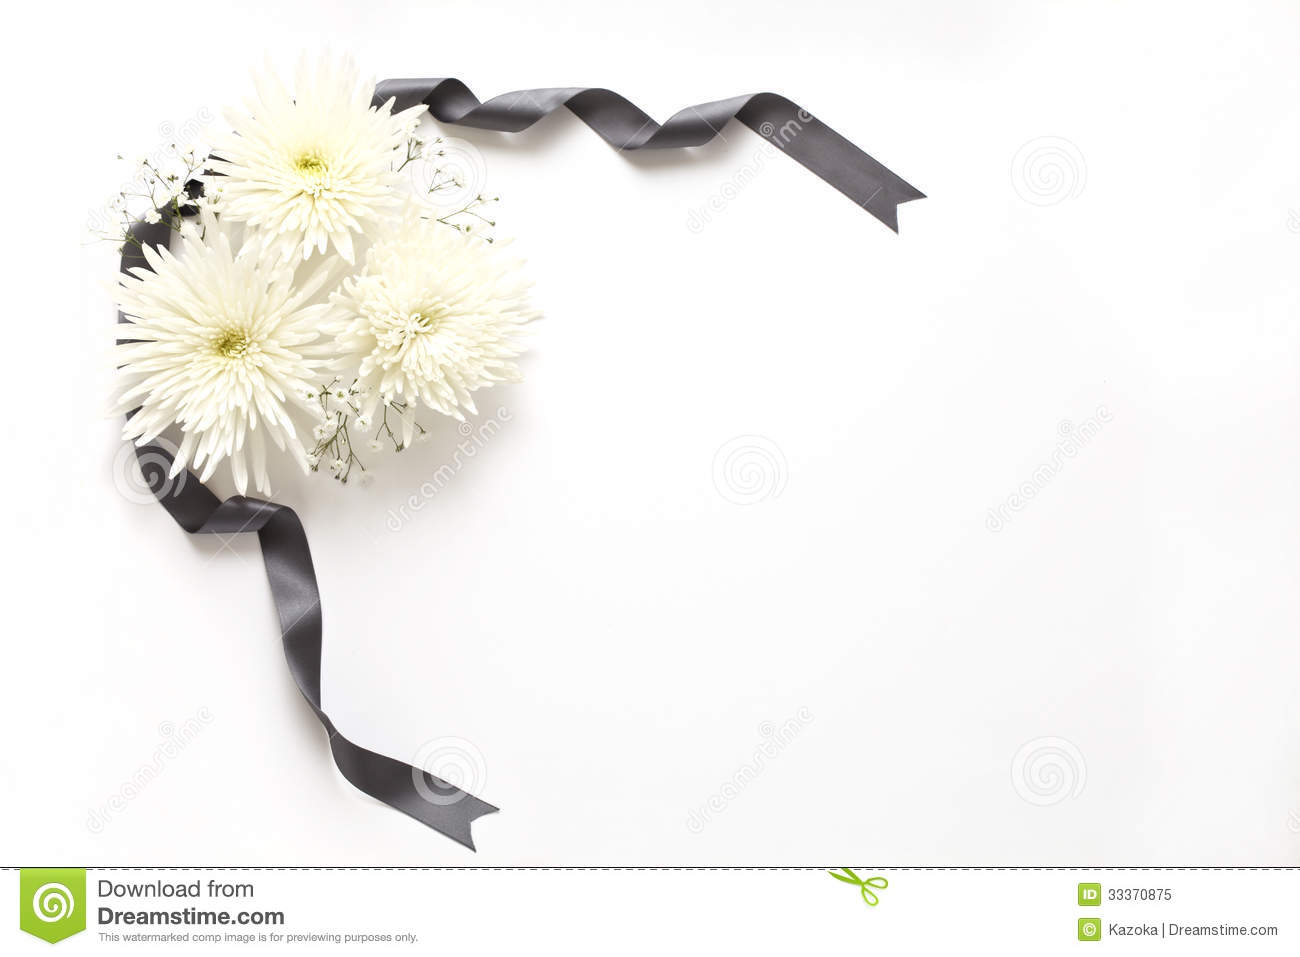 Funeral Flowers Clipart Funeral Flowers